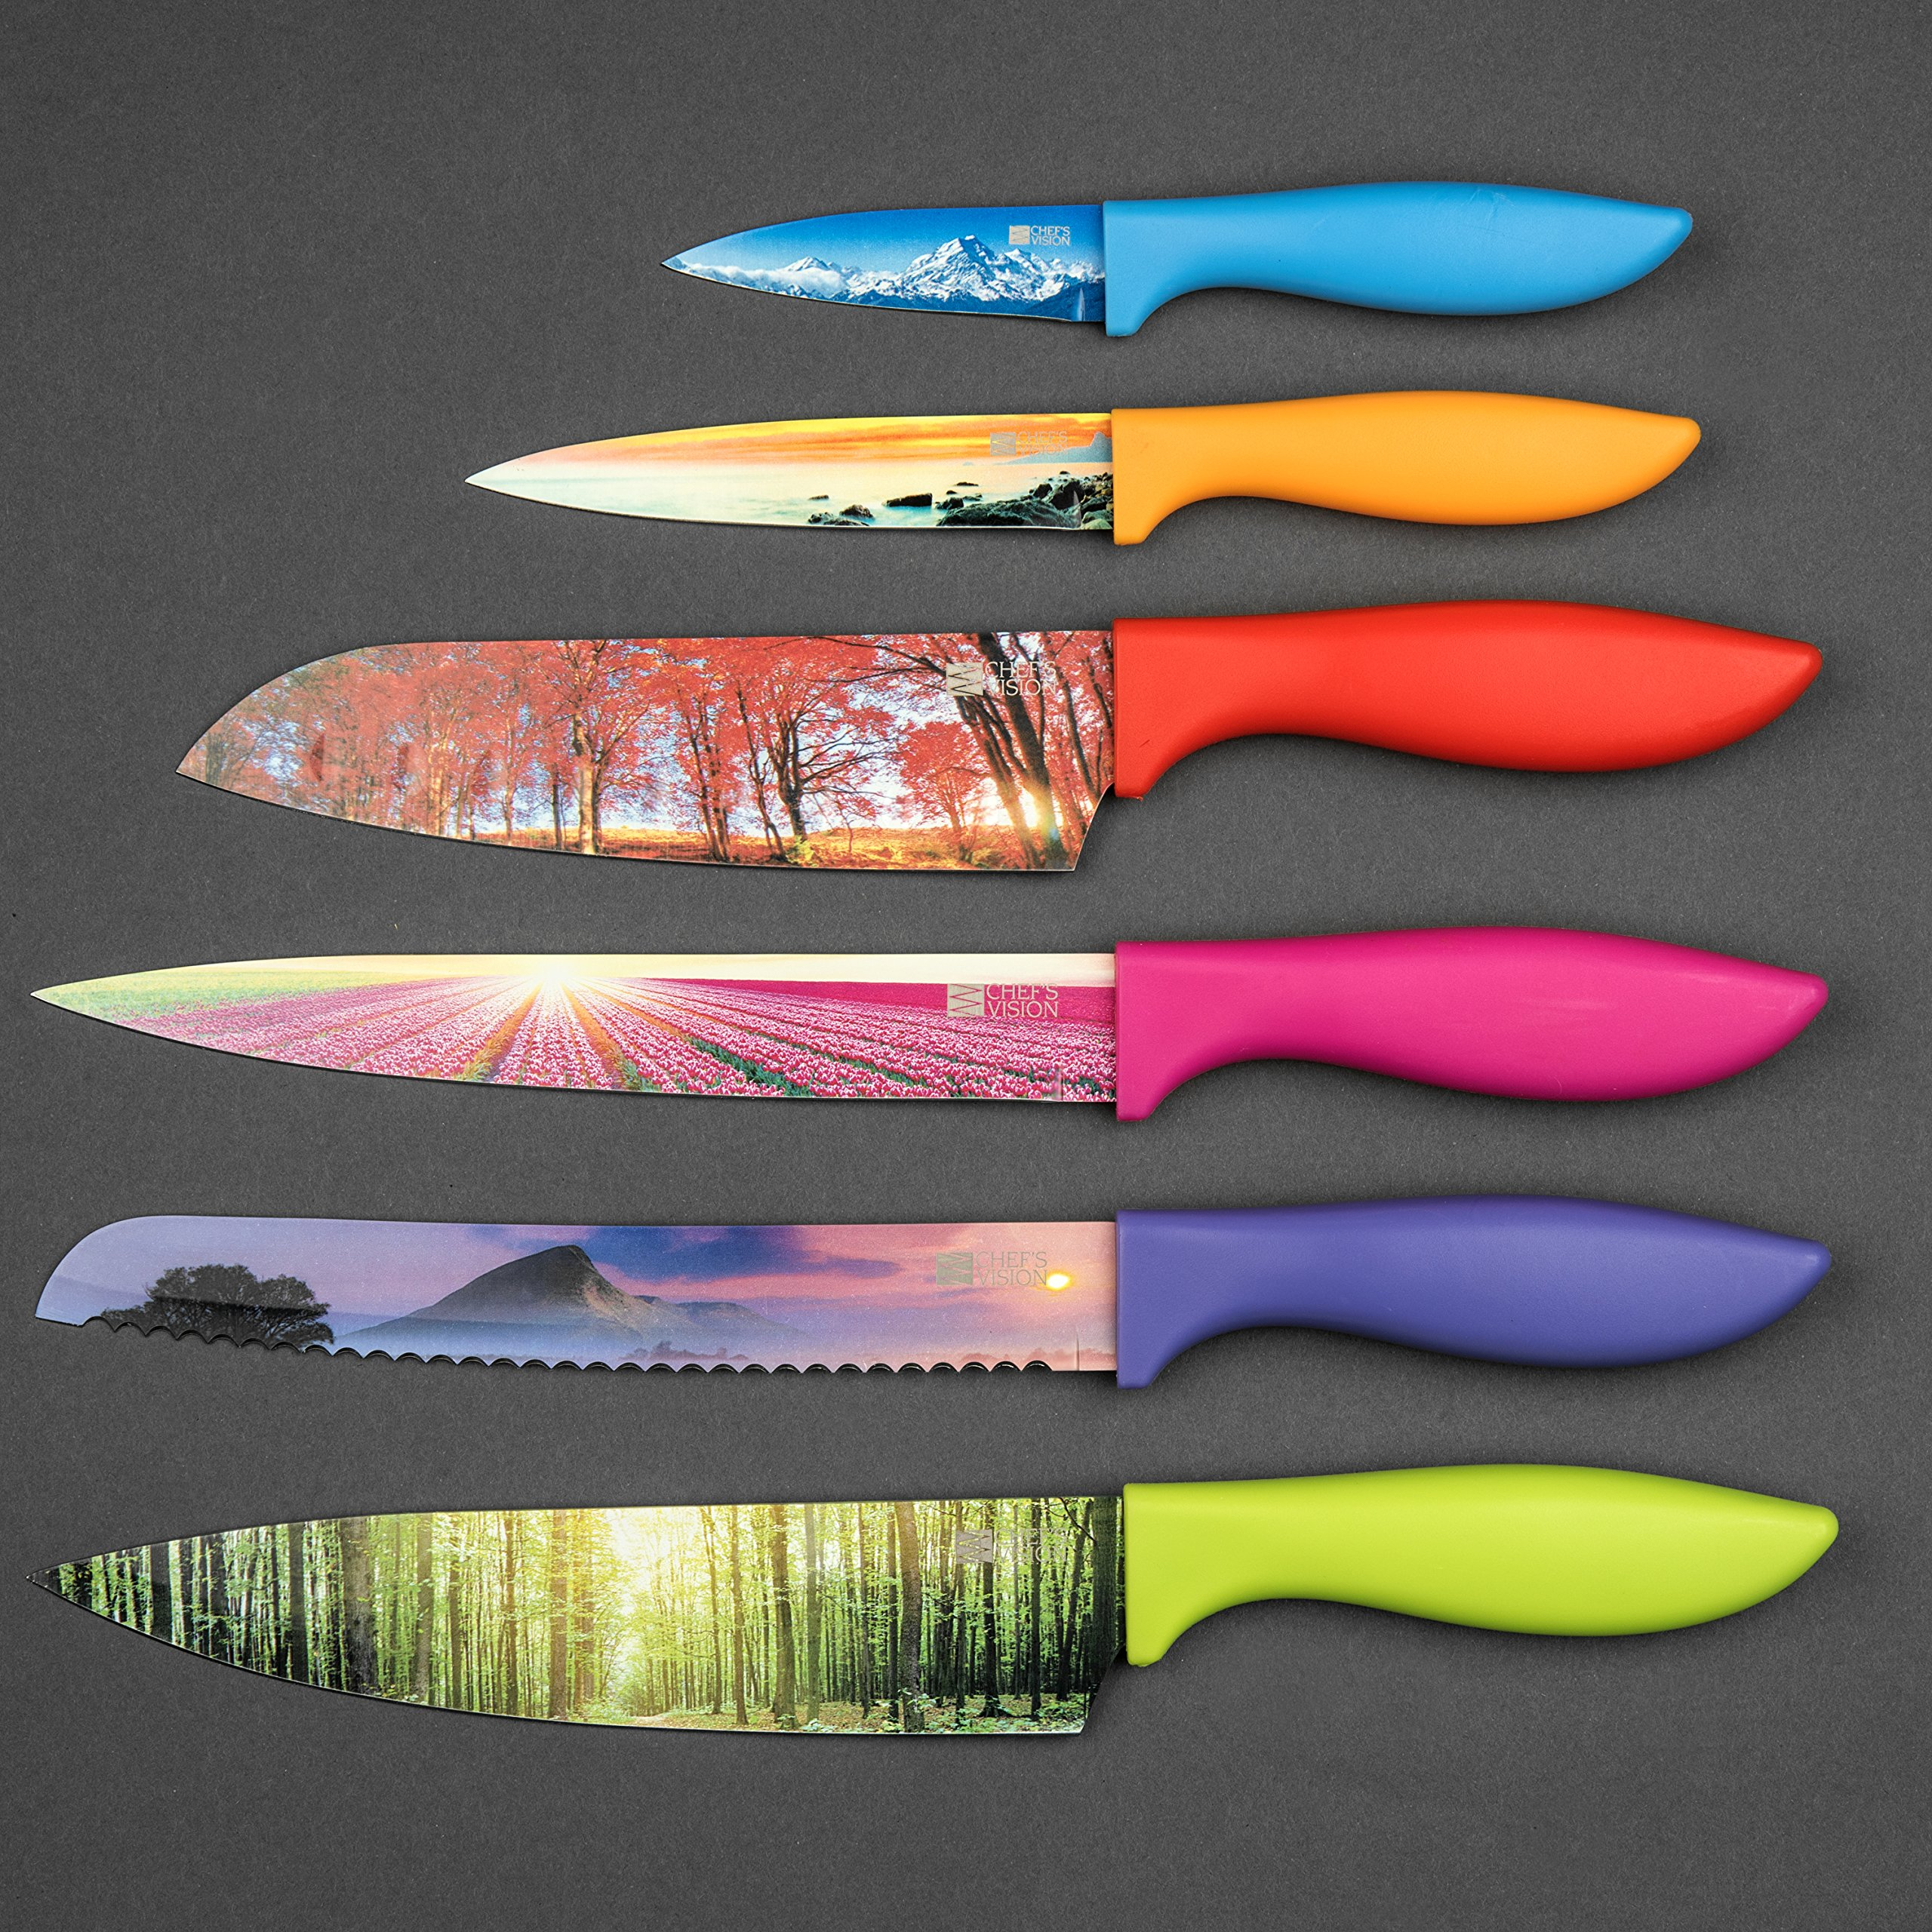 Kitchen Knife Set in Gift Box by Chef's Vision - Landscape Series - Beautiful, Unique Gifts For Her and For Him - 6 Piece Color Knife Set - Chef, Bread, Slicer, Santoku, Utility and Paring Knives by Chef's Vision (Image #7)